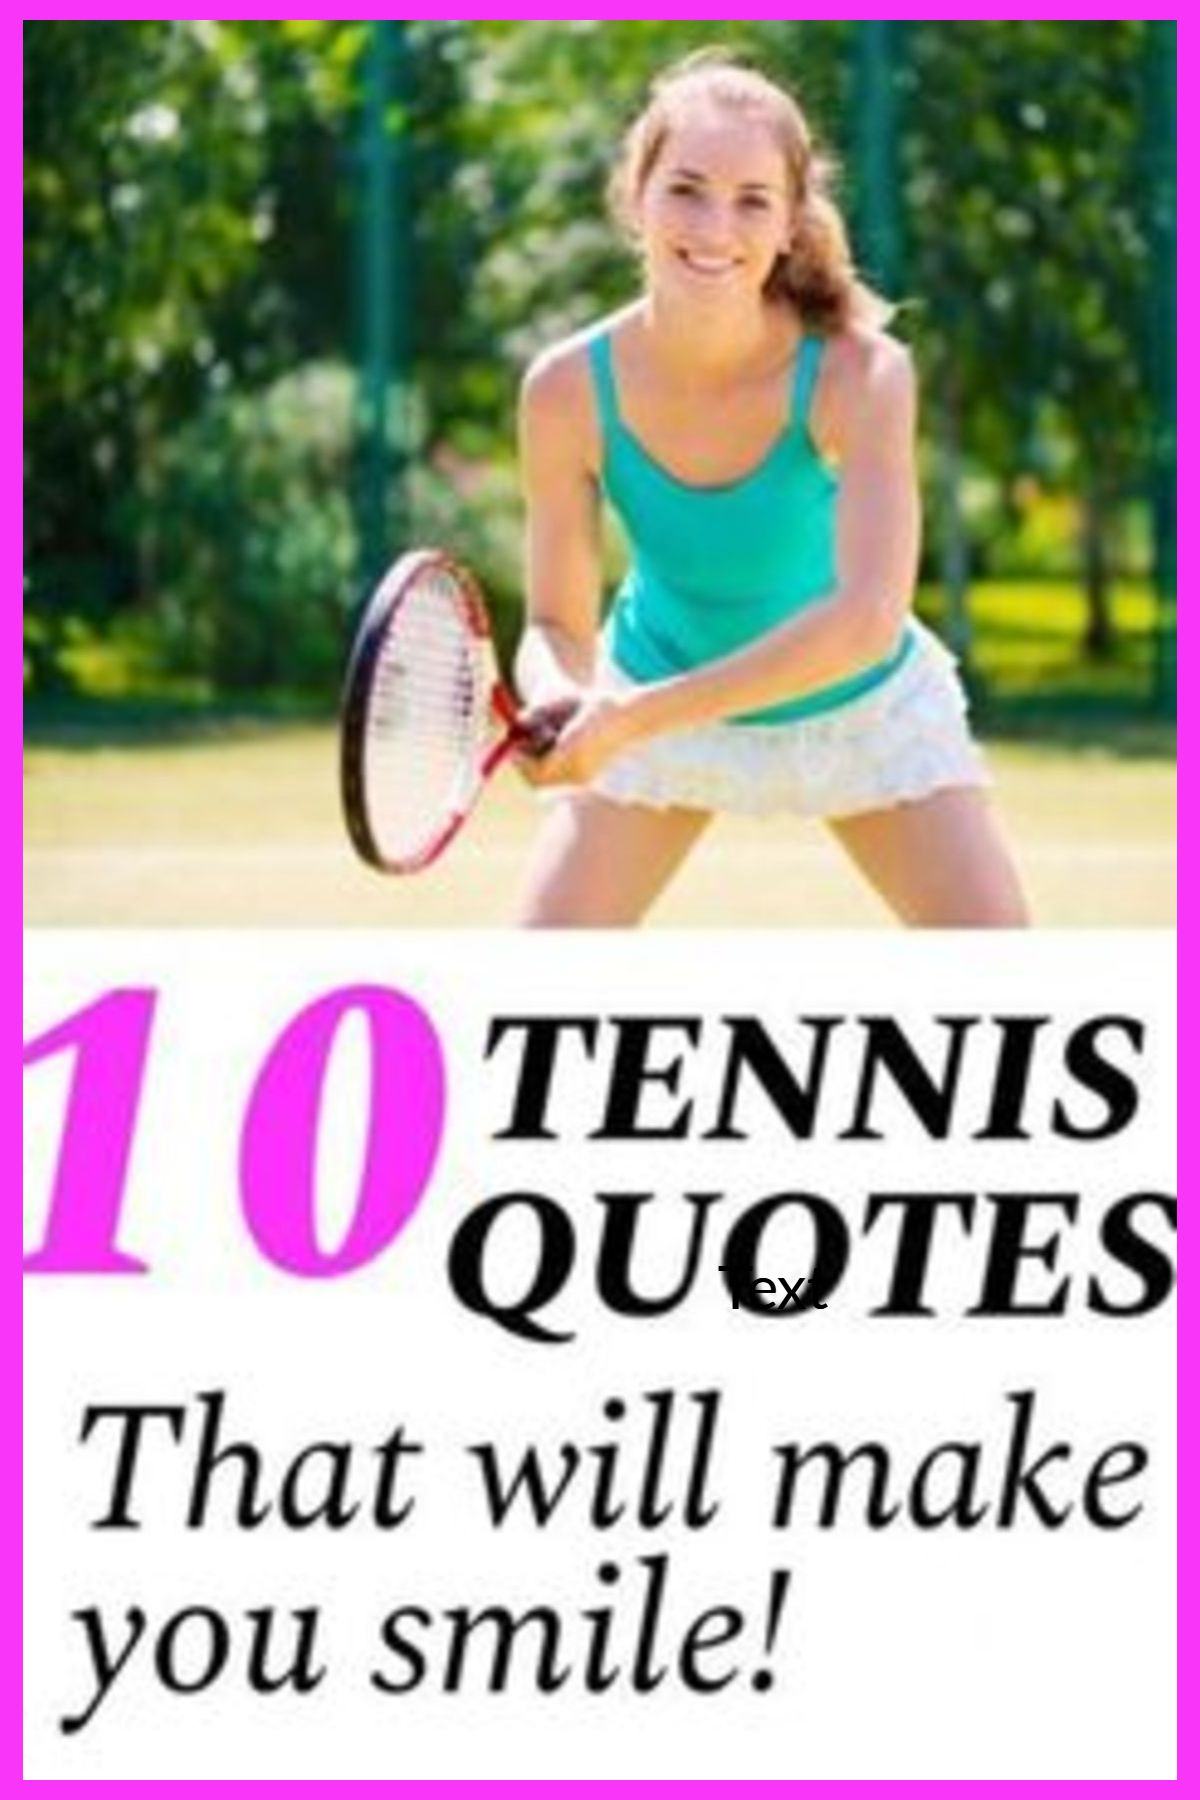 The Best Tennis Quotes In 2020 Tennis Quotes Tennis Quotes Funny Tennis Match